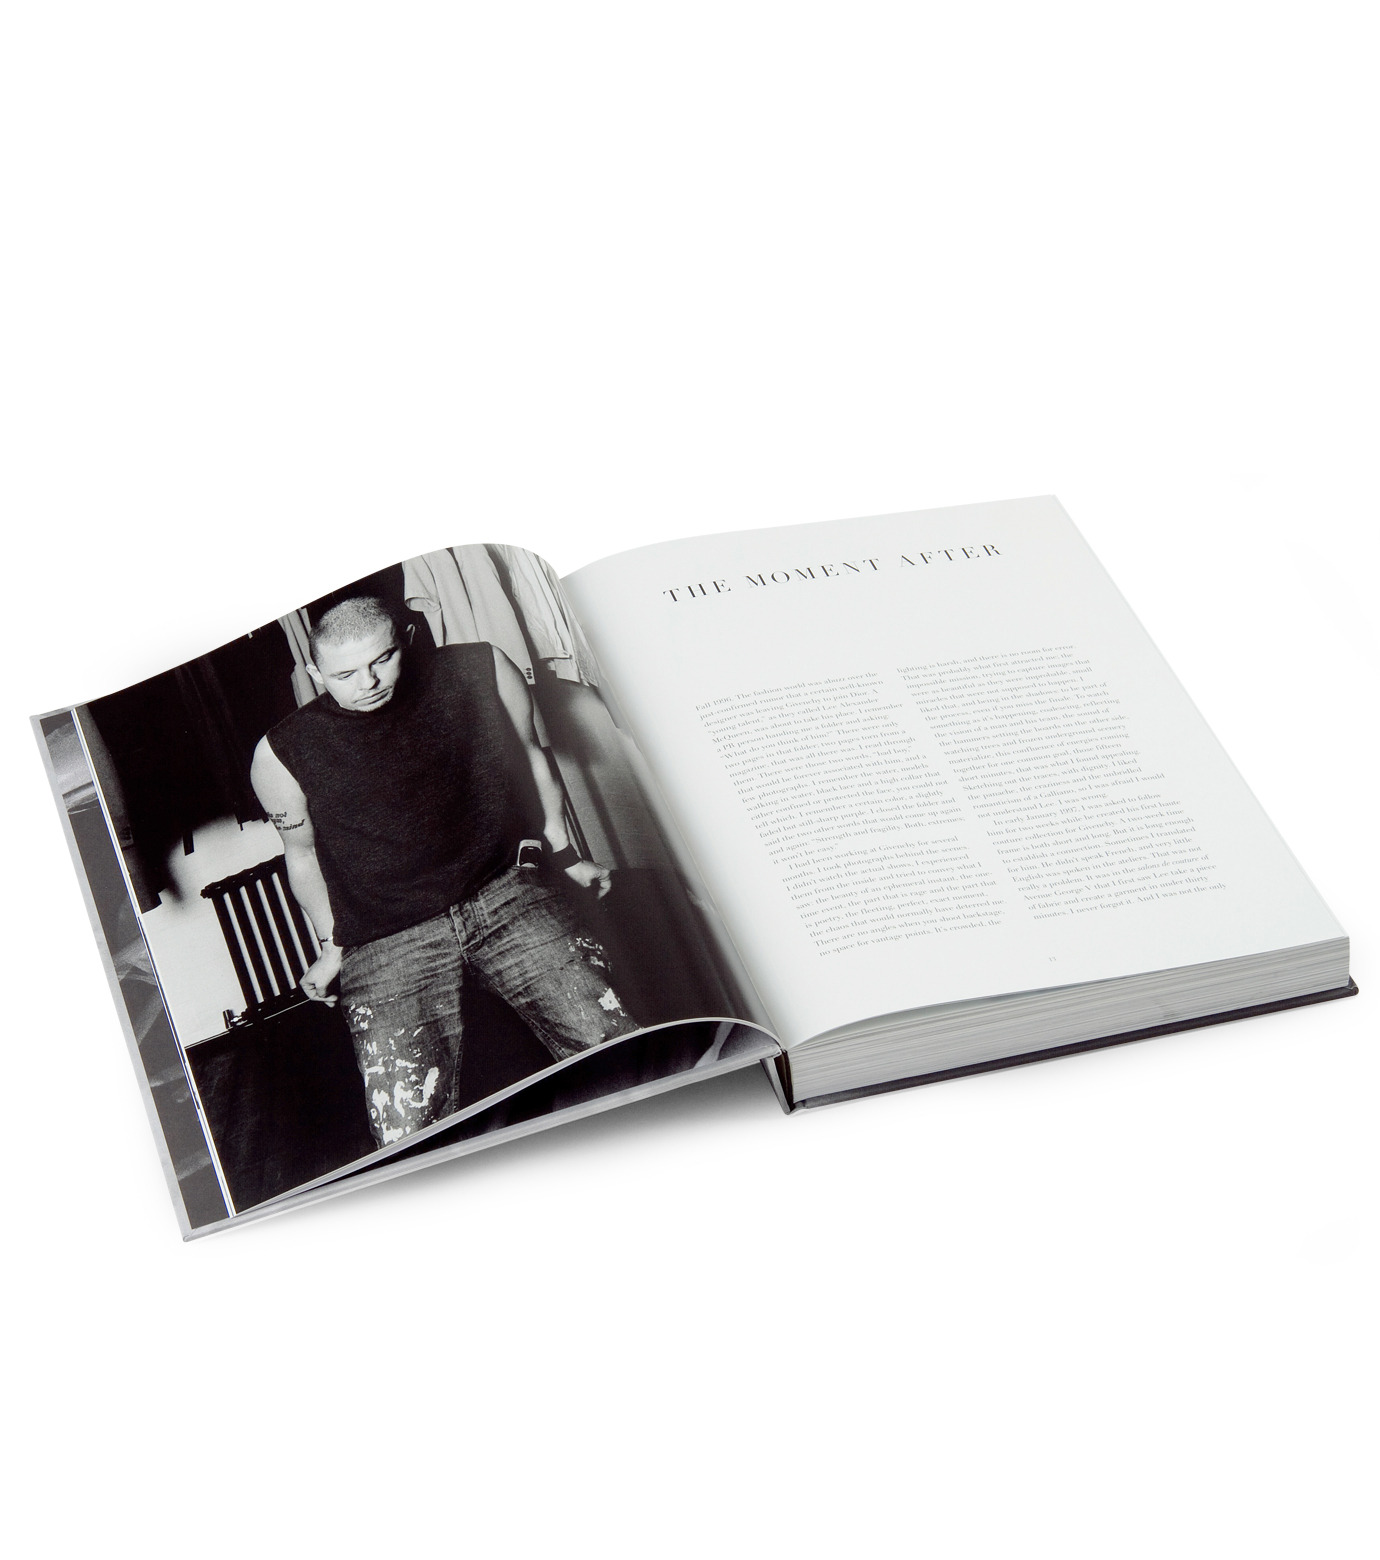 ArtBook(アートブック)のLove looks not with the eyes: thirteen years with lee alexander mcqueen.-GRAY(インテリア/OTHER-GOODS/interior/OTHER-GOODS)-4197-0448-2-11 拡大詳細画像2